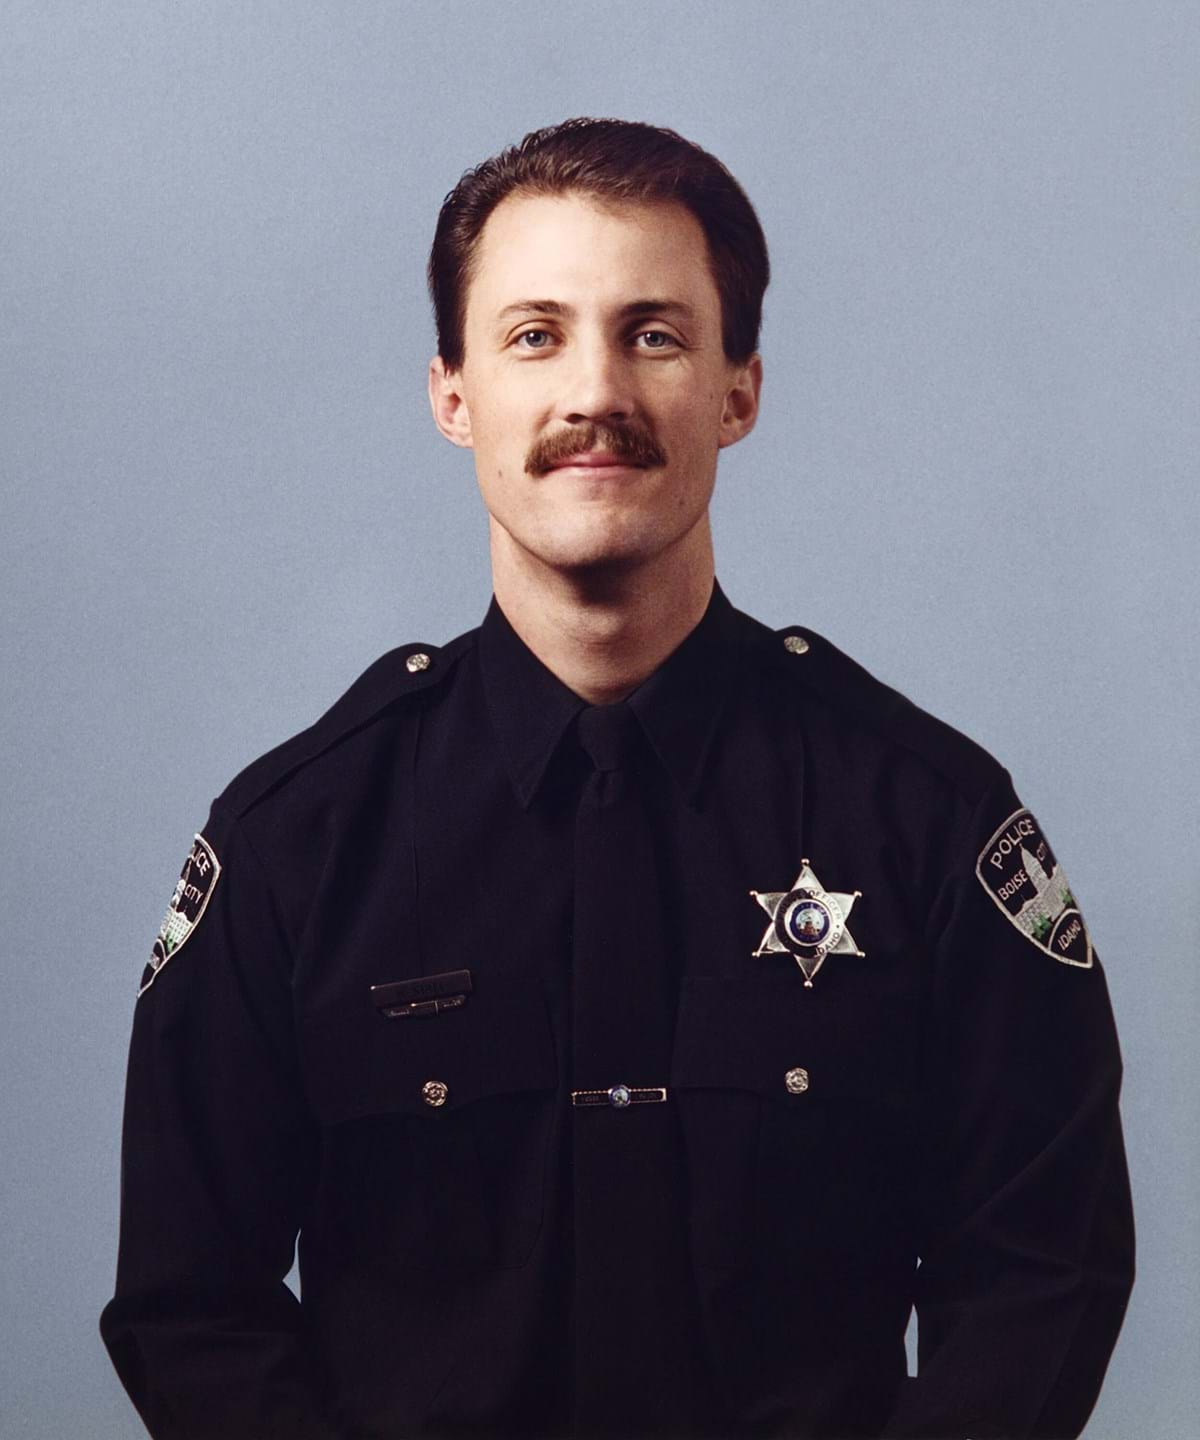 Officer Mark Stall